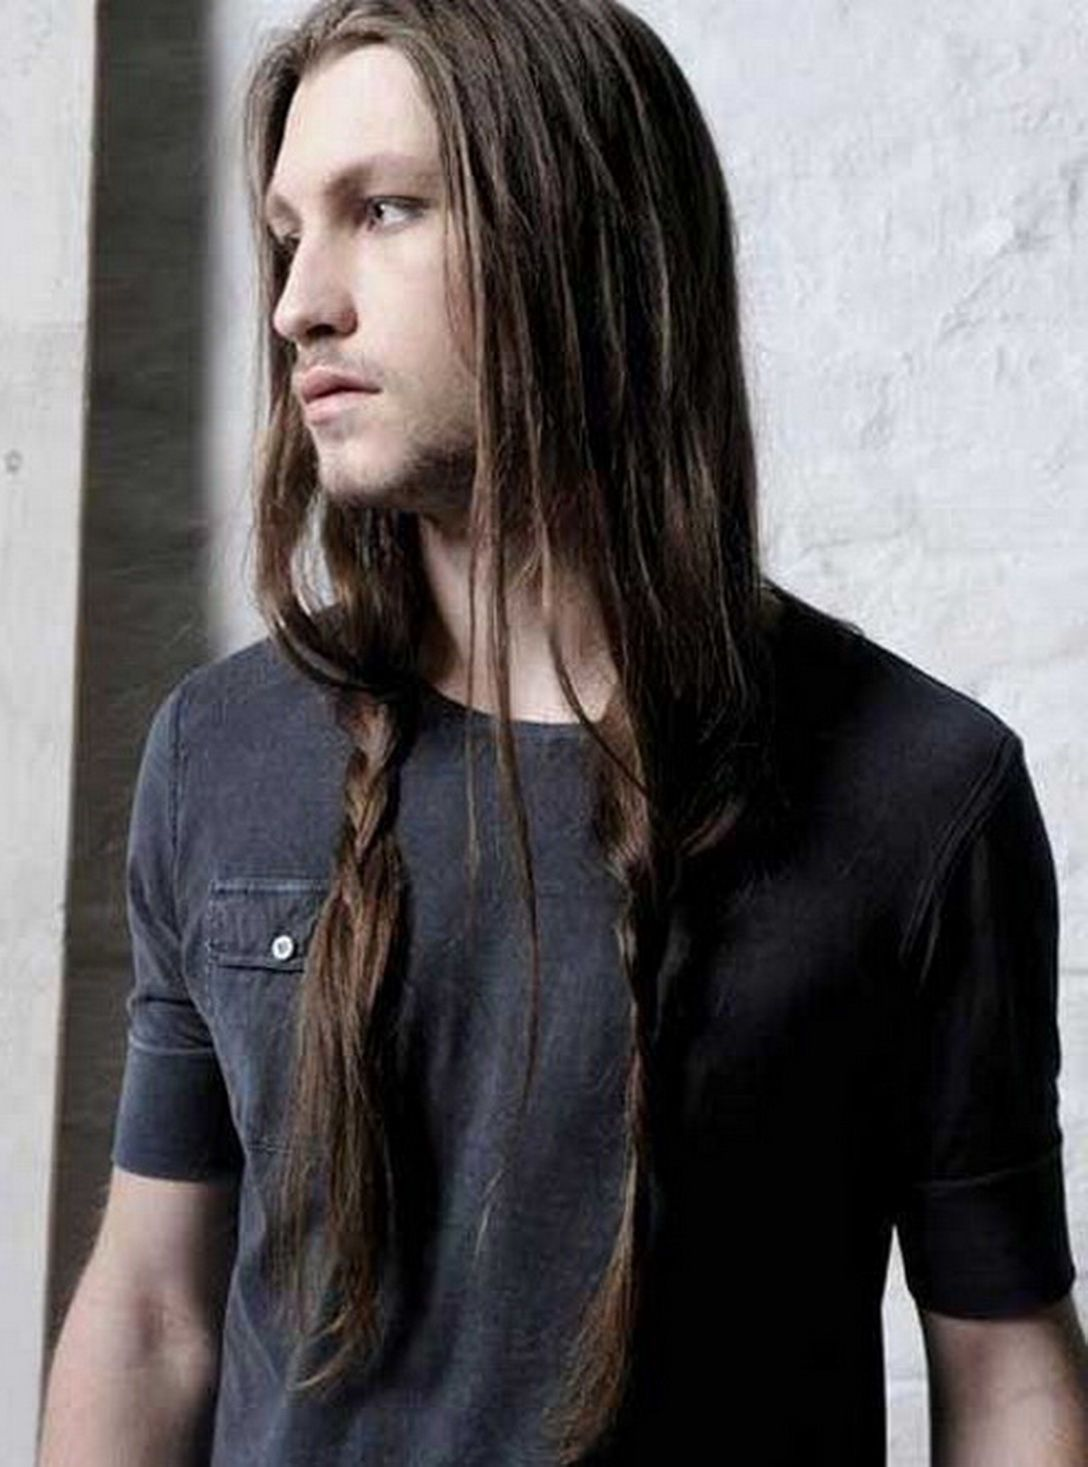 Hairstyles For Men With Long Hair Braids Long Hair Styles Hair Styles Mens Braids Hairstyles